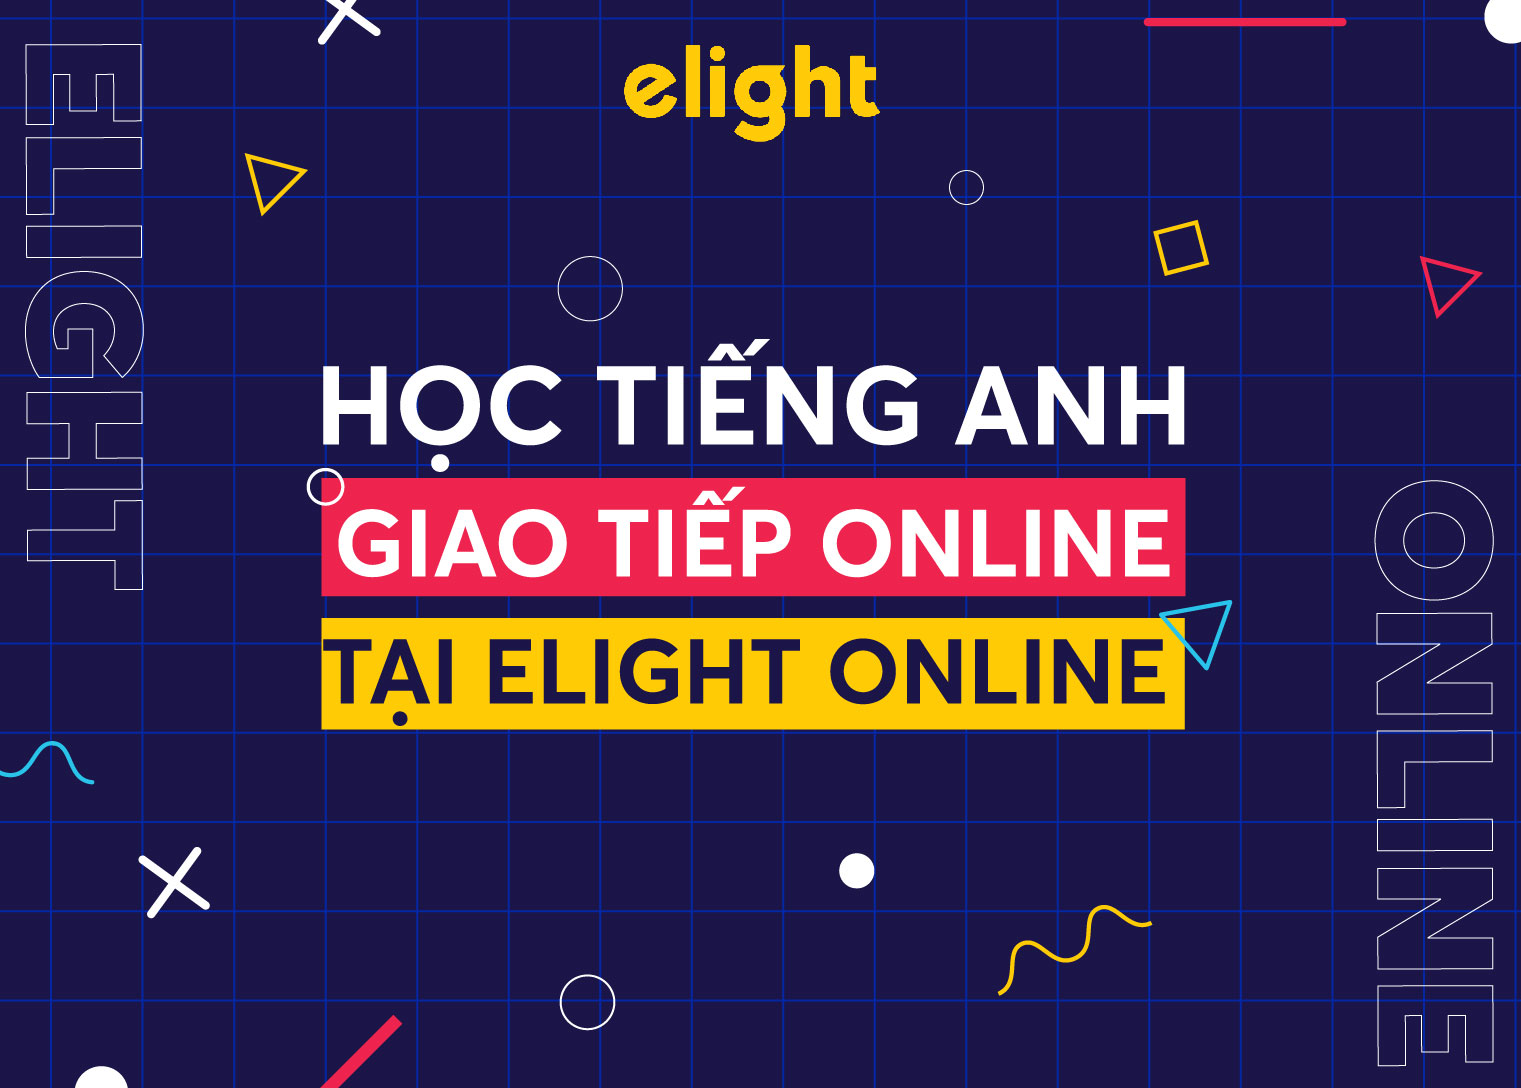 học tiếng Anh giao tiếp online